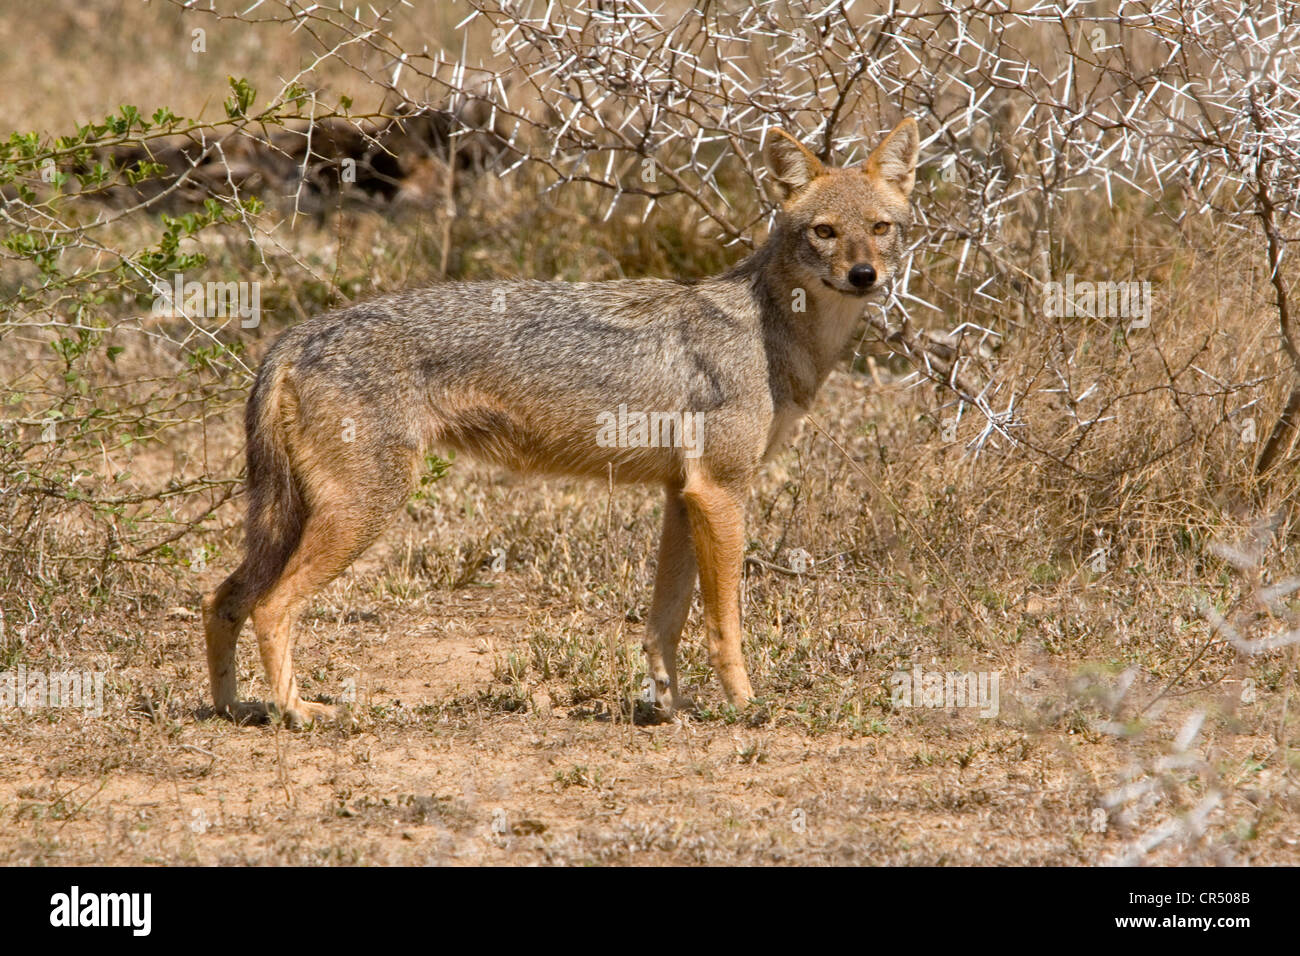 Black-backed jackal (canis mesomelas), Yala West (Ruhuna) National Park, Sri Lanka Stock Photo